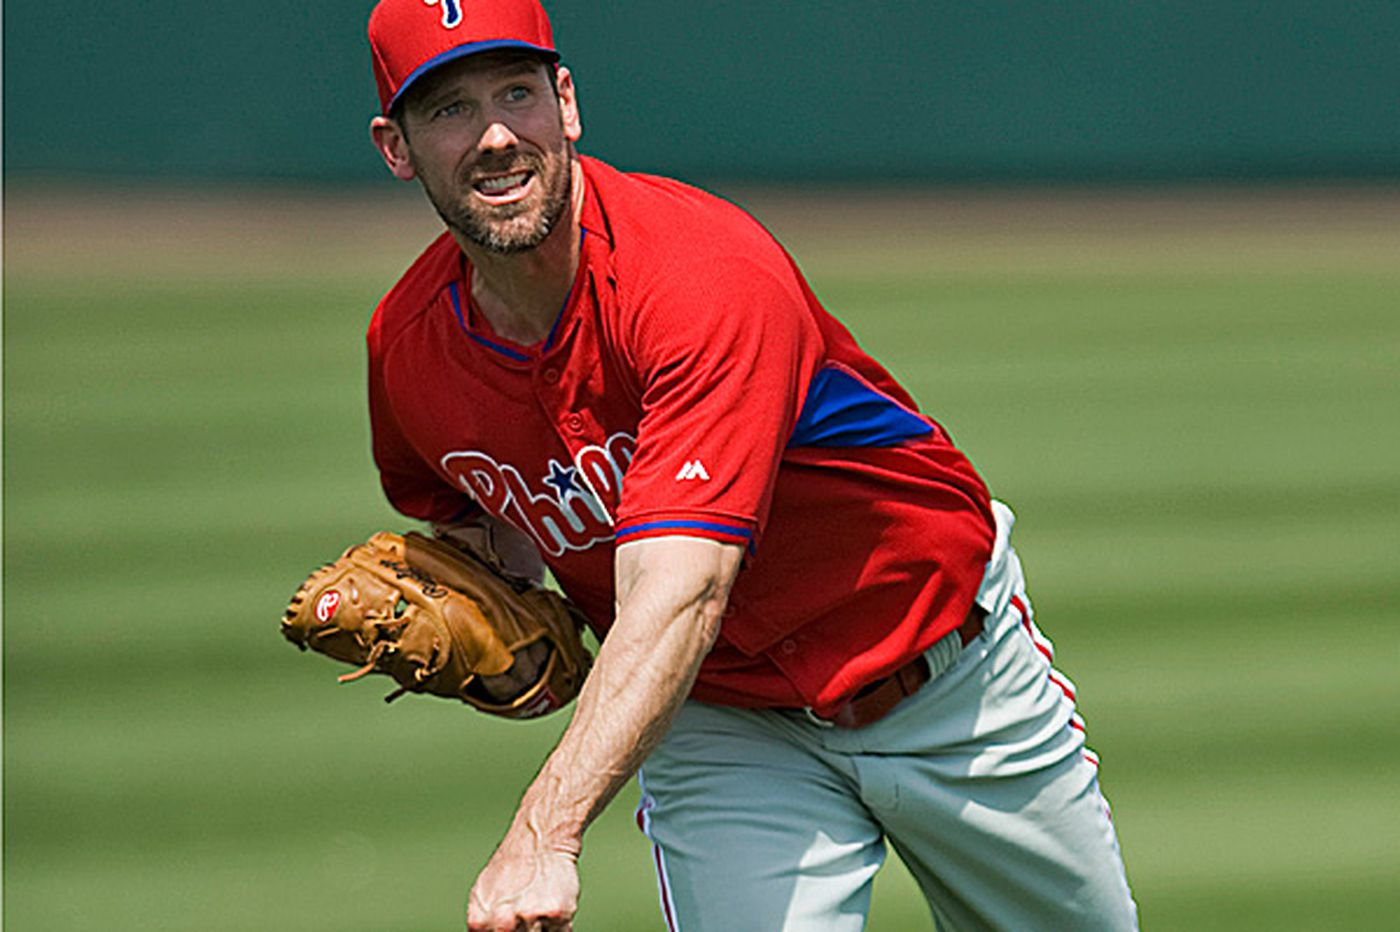 Cliff Lee fighting time and losing